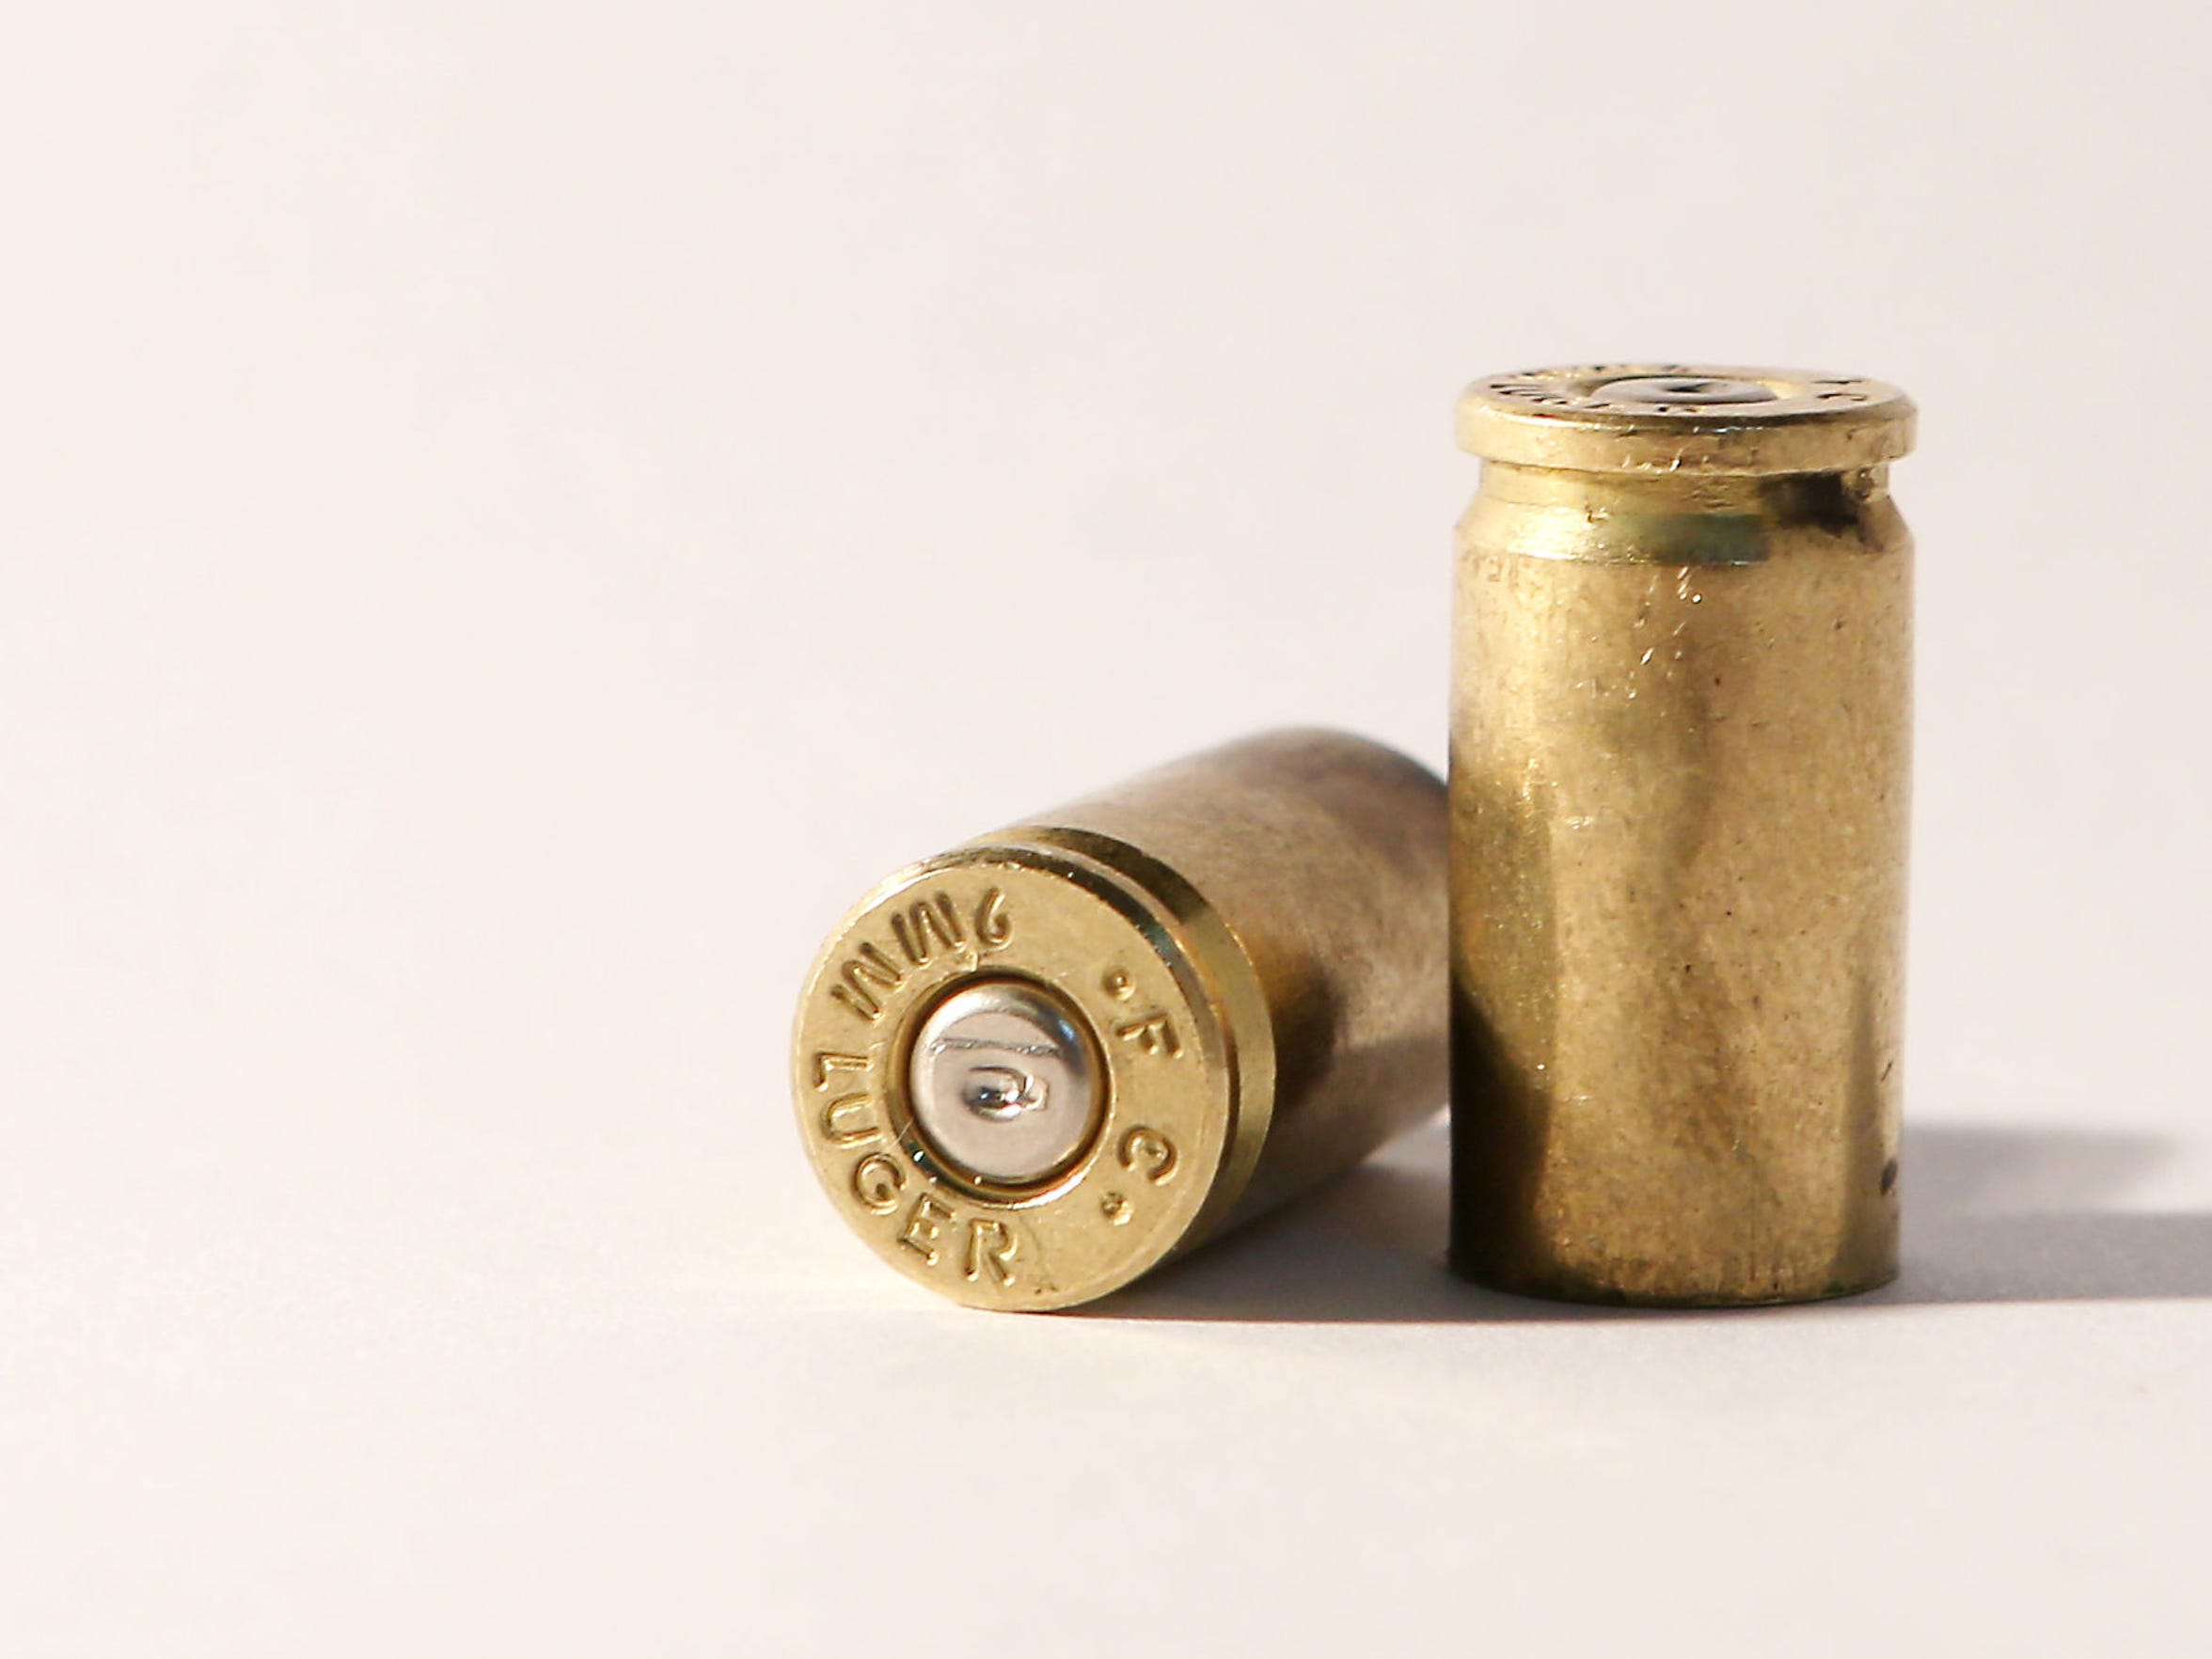 A photograph of 9mm bullet casings, provided by Second